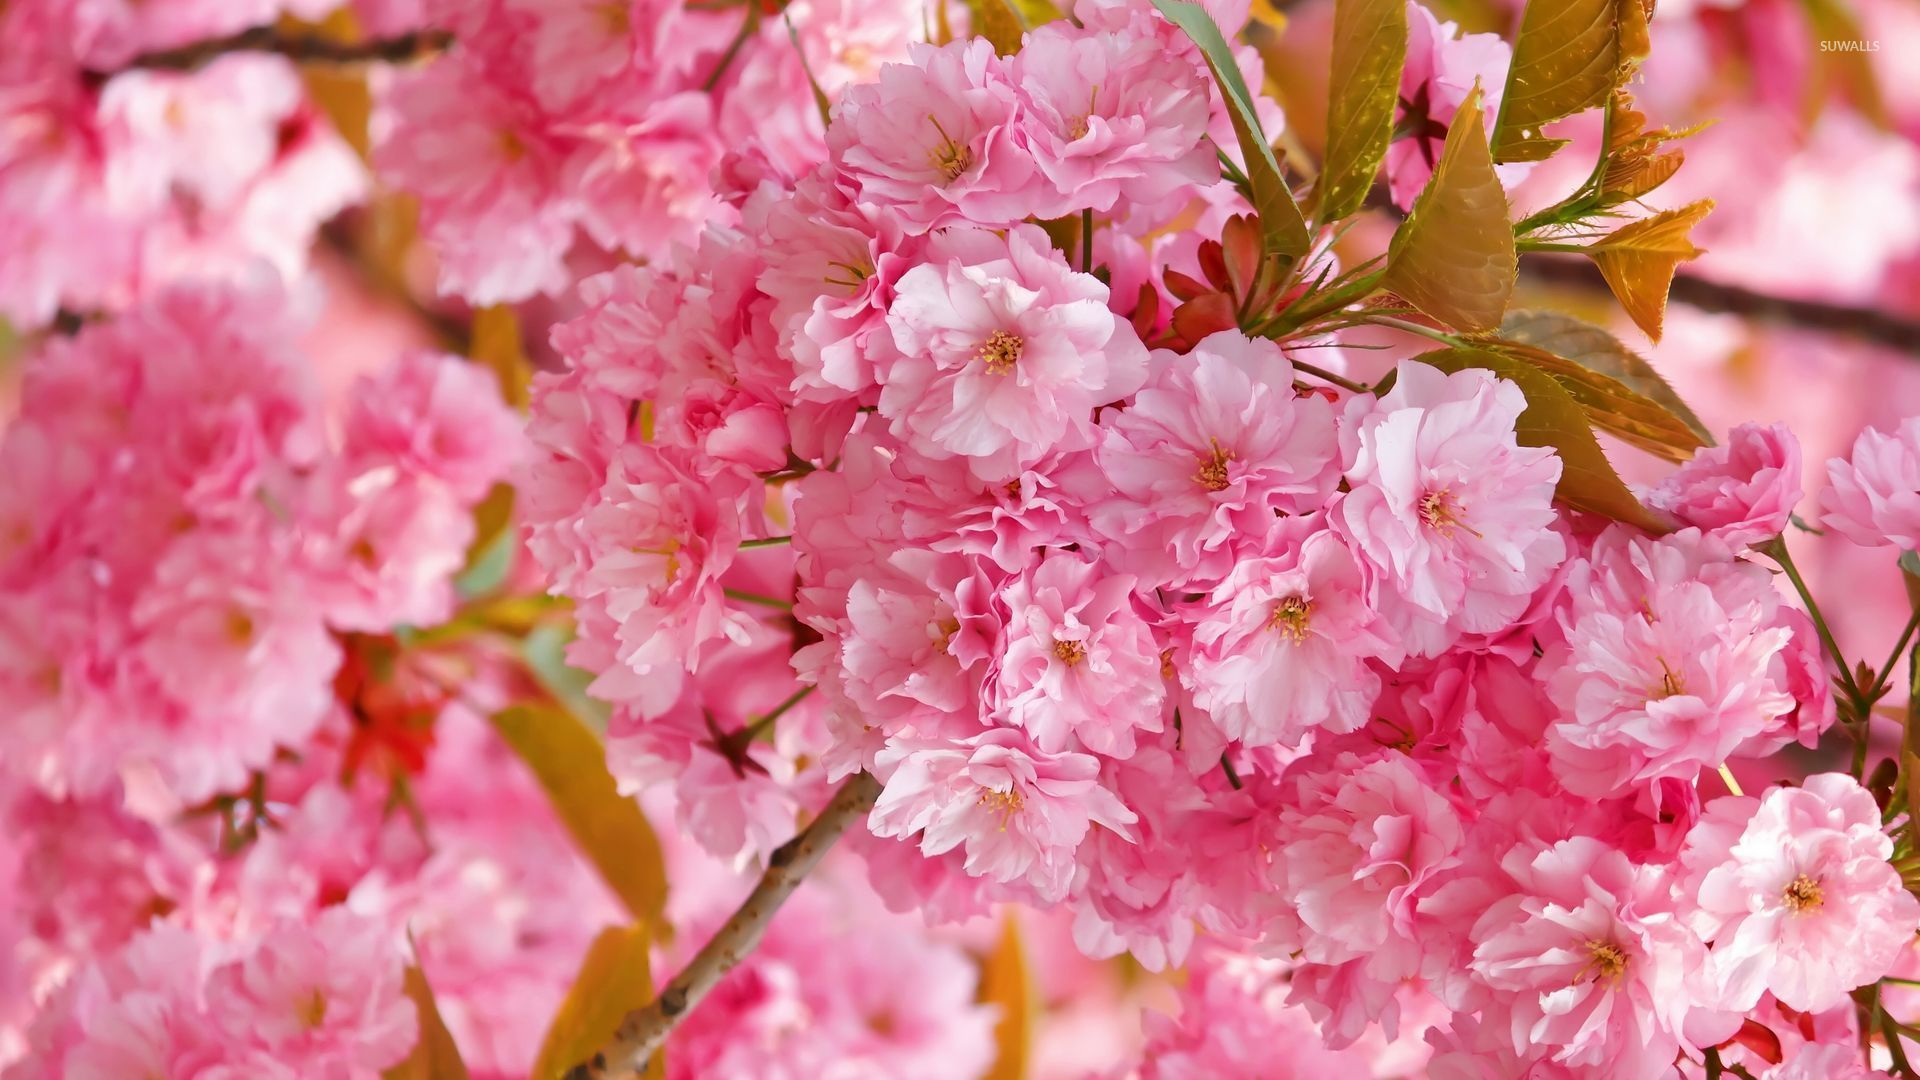 Cute Minimalistic Wallpapers Beautiful Pink Blossoms Wallpaper Flower Wallpapers 52785